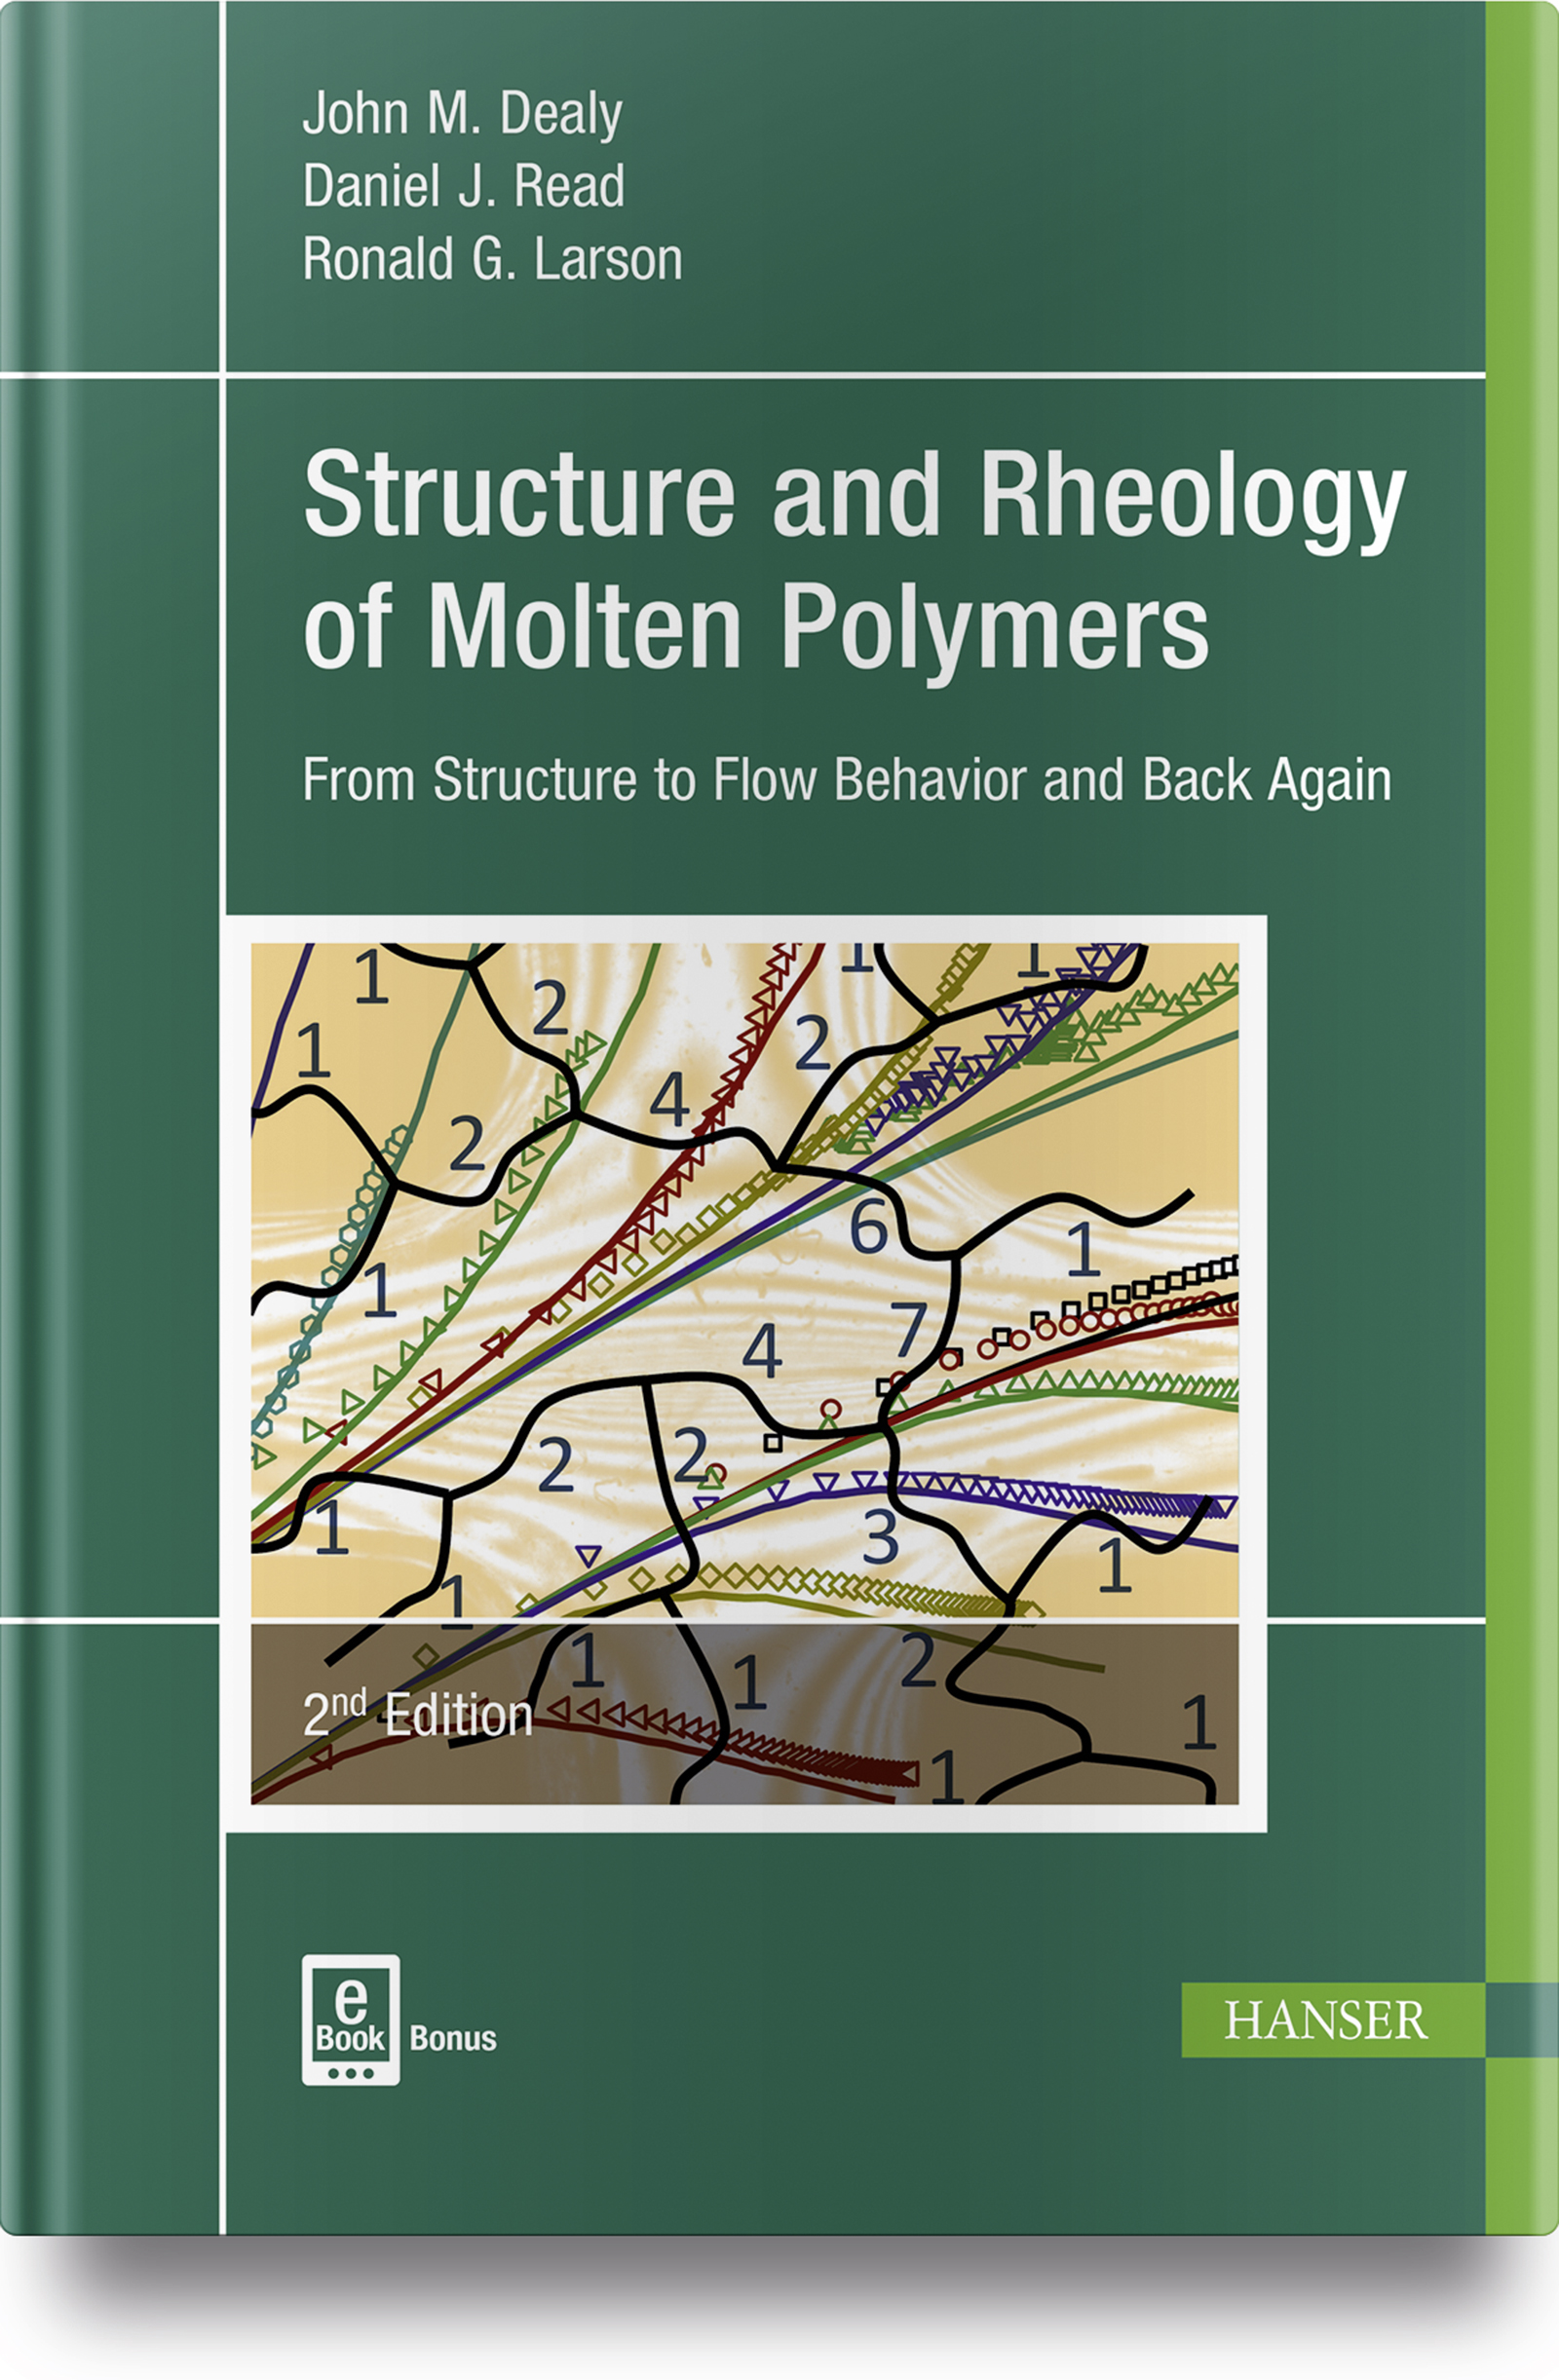 Dealy, Read, Larson, Structure and Rheology of Molten Polymers, 978-1-56990-611-8